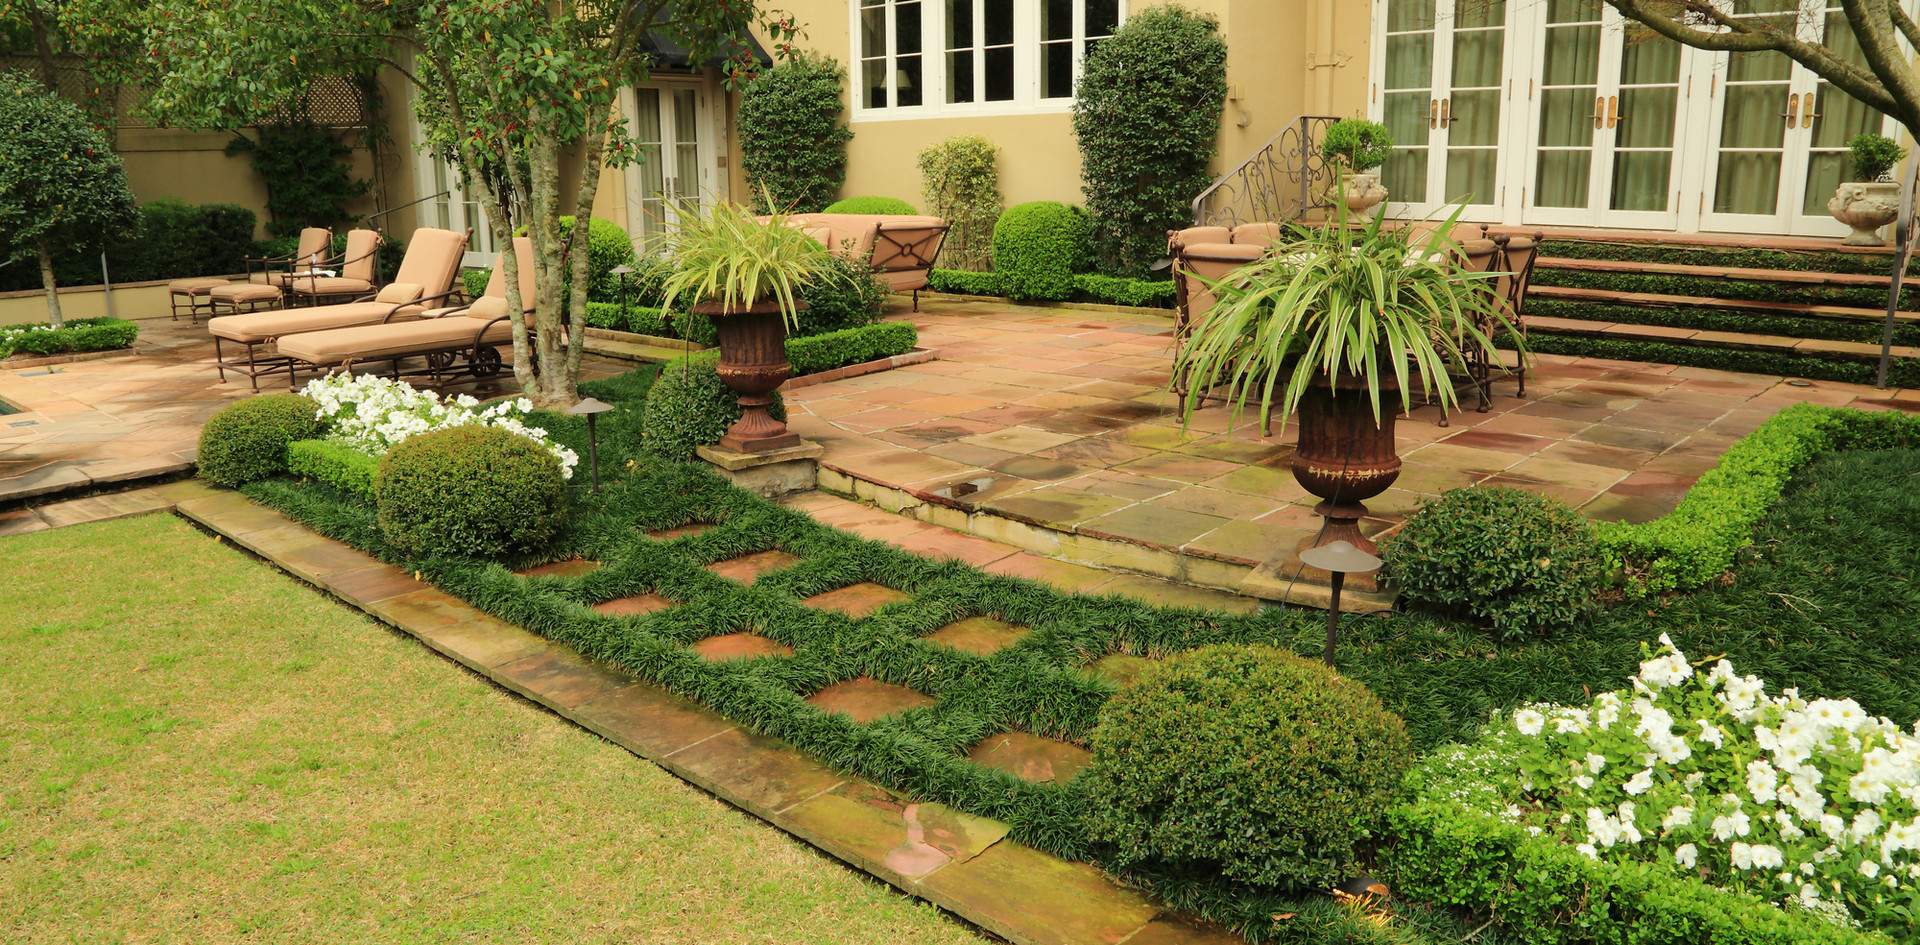 Patio and Garden Traditional Style Landscaping and Hardscaping